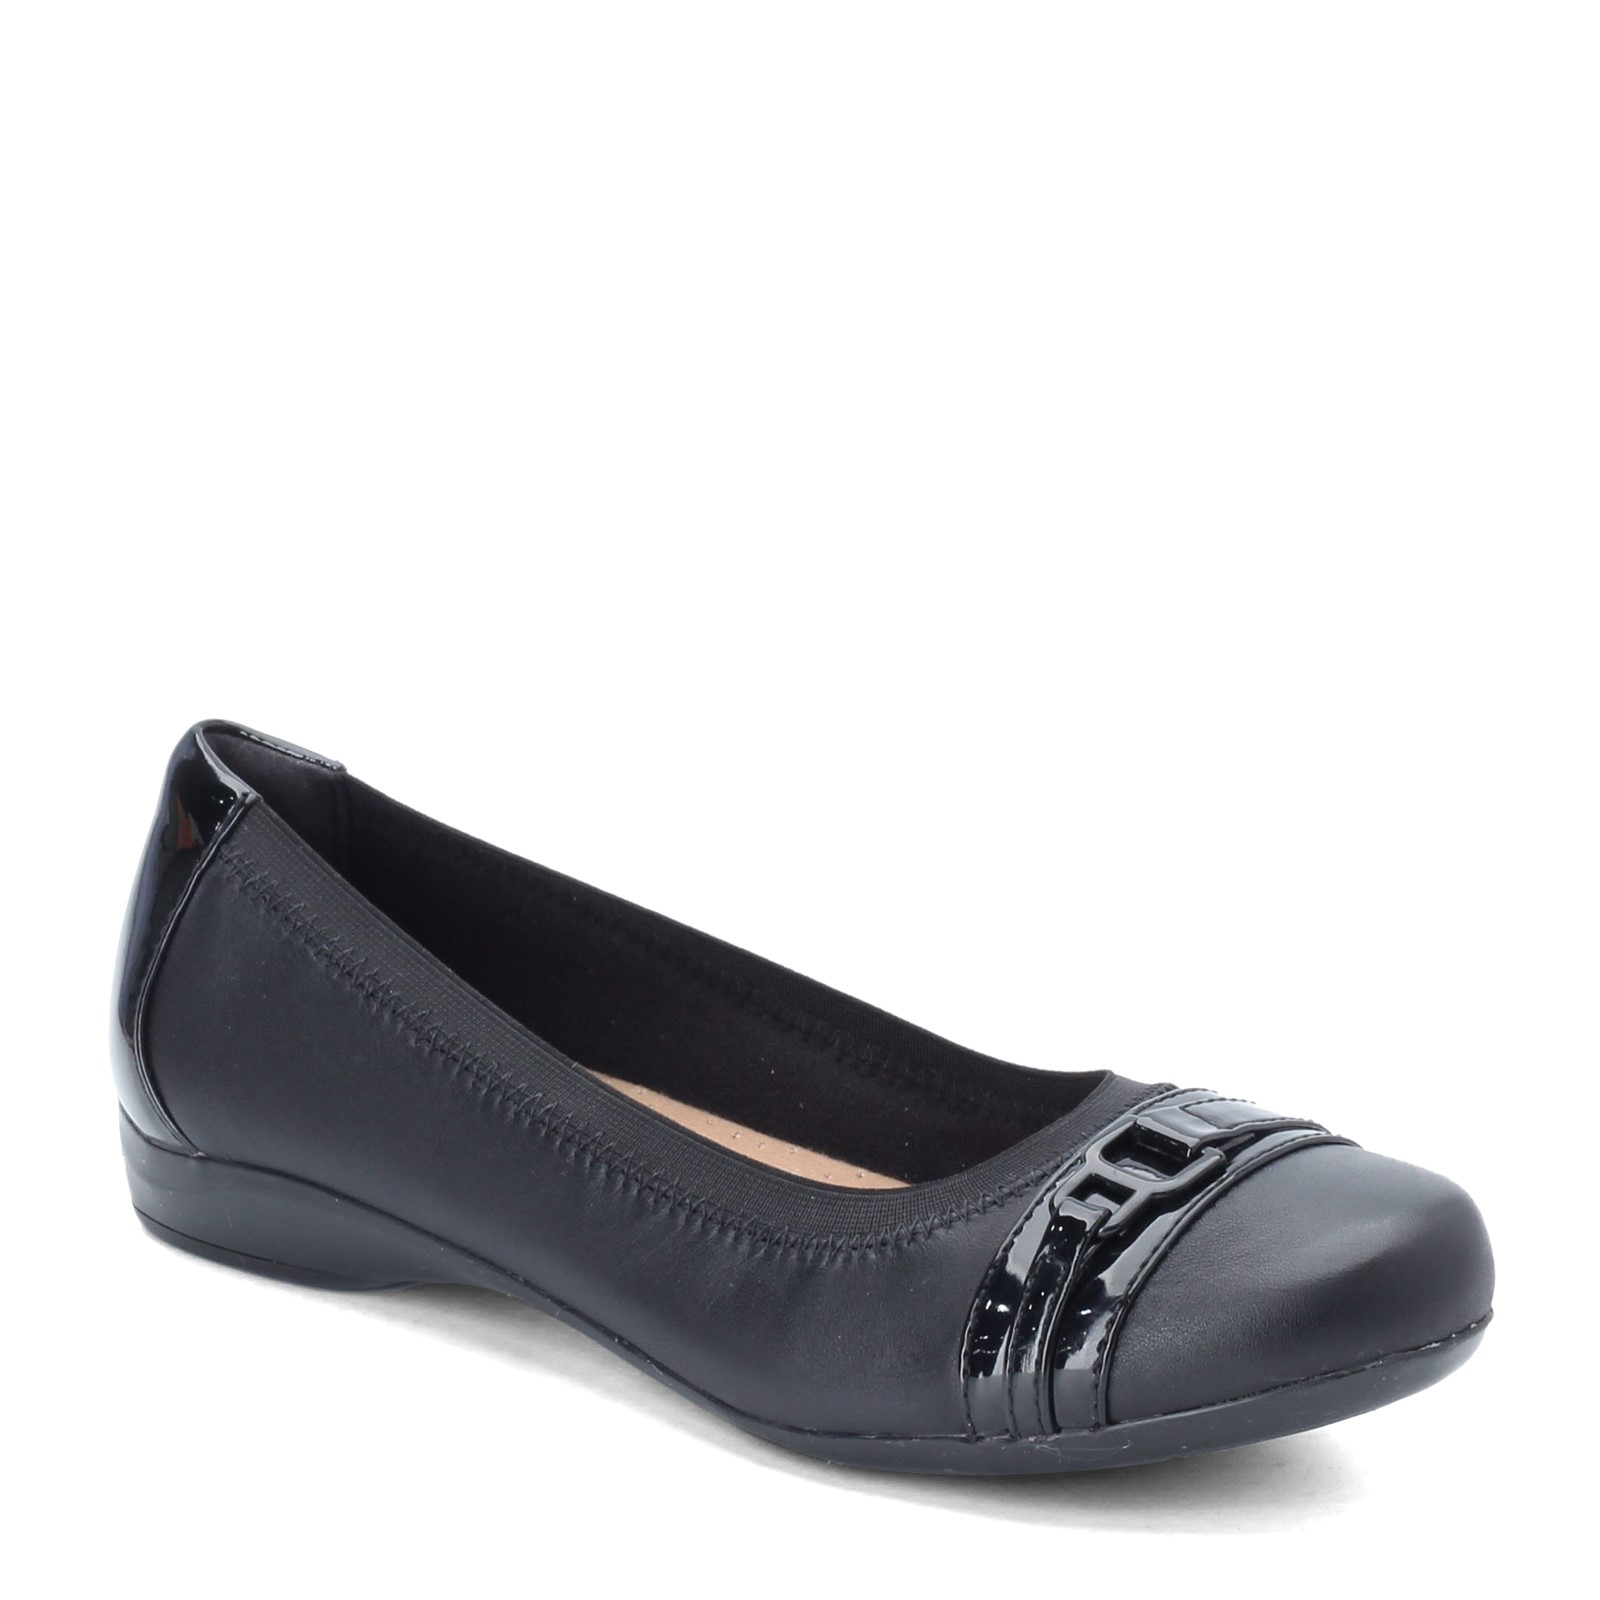 Women's Clarks, Kinzie Light Slip on Flats